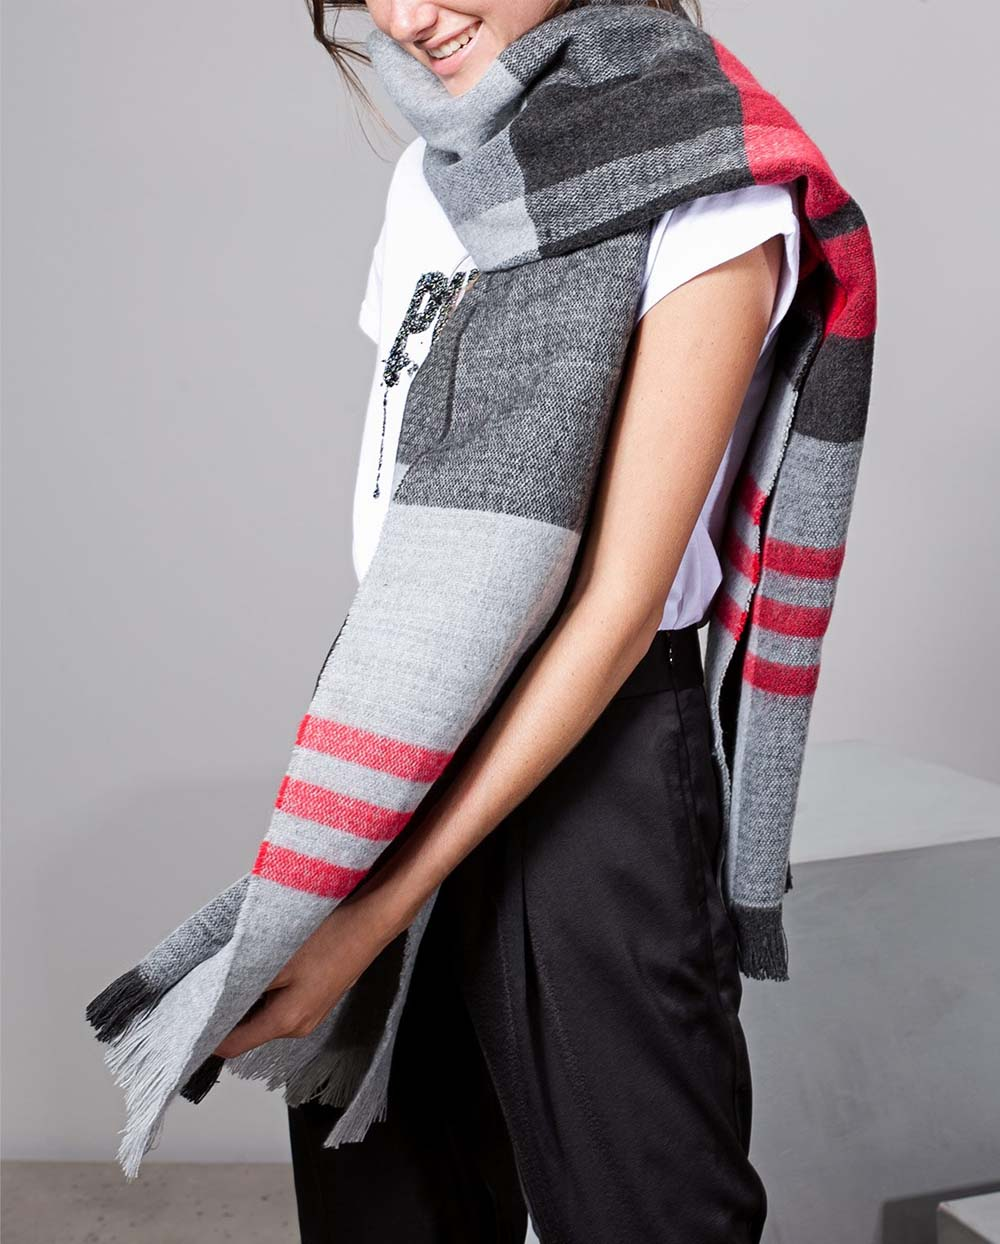 Scarf for winter fashion